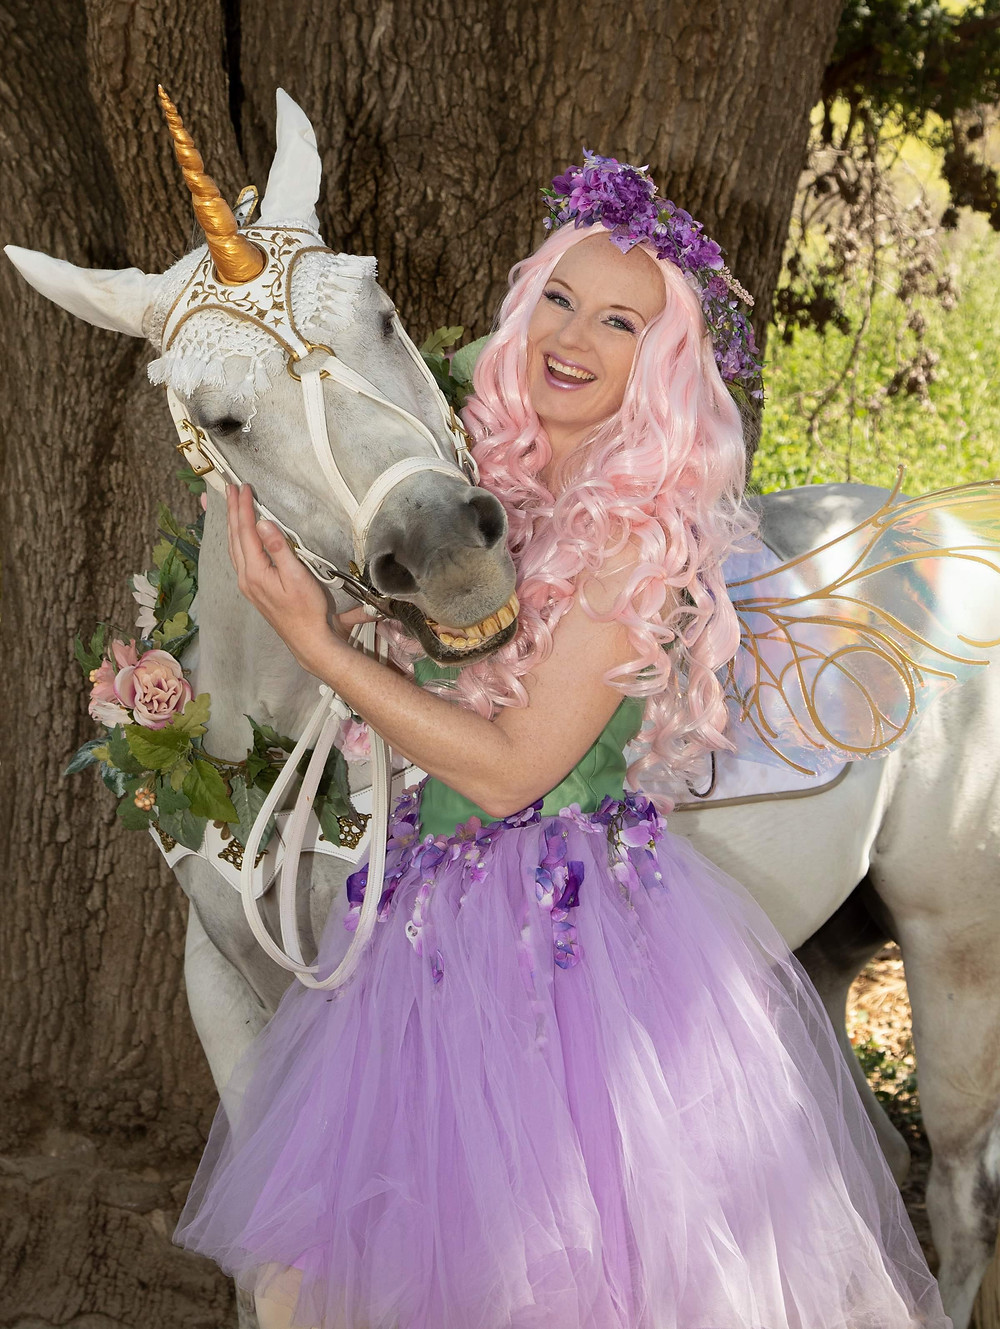 Milo the Unicorn Smiles for a photograph next to a woman wearing a purple and green fairy costume.